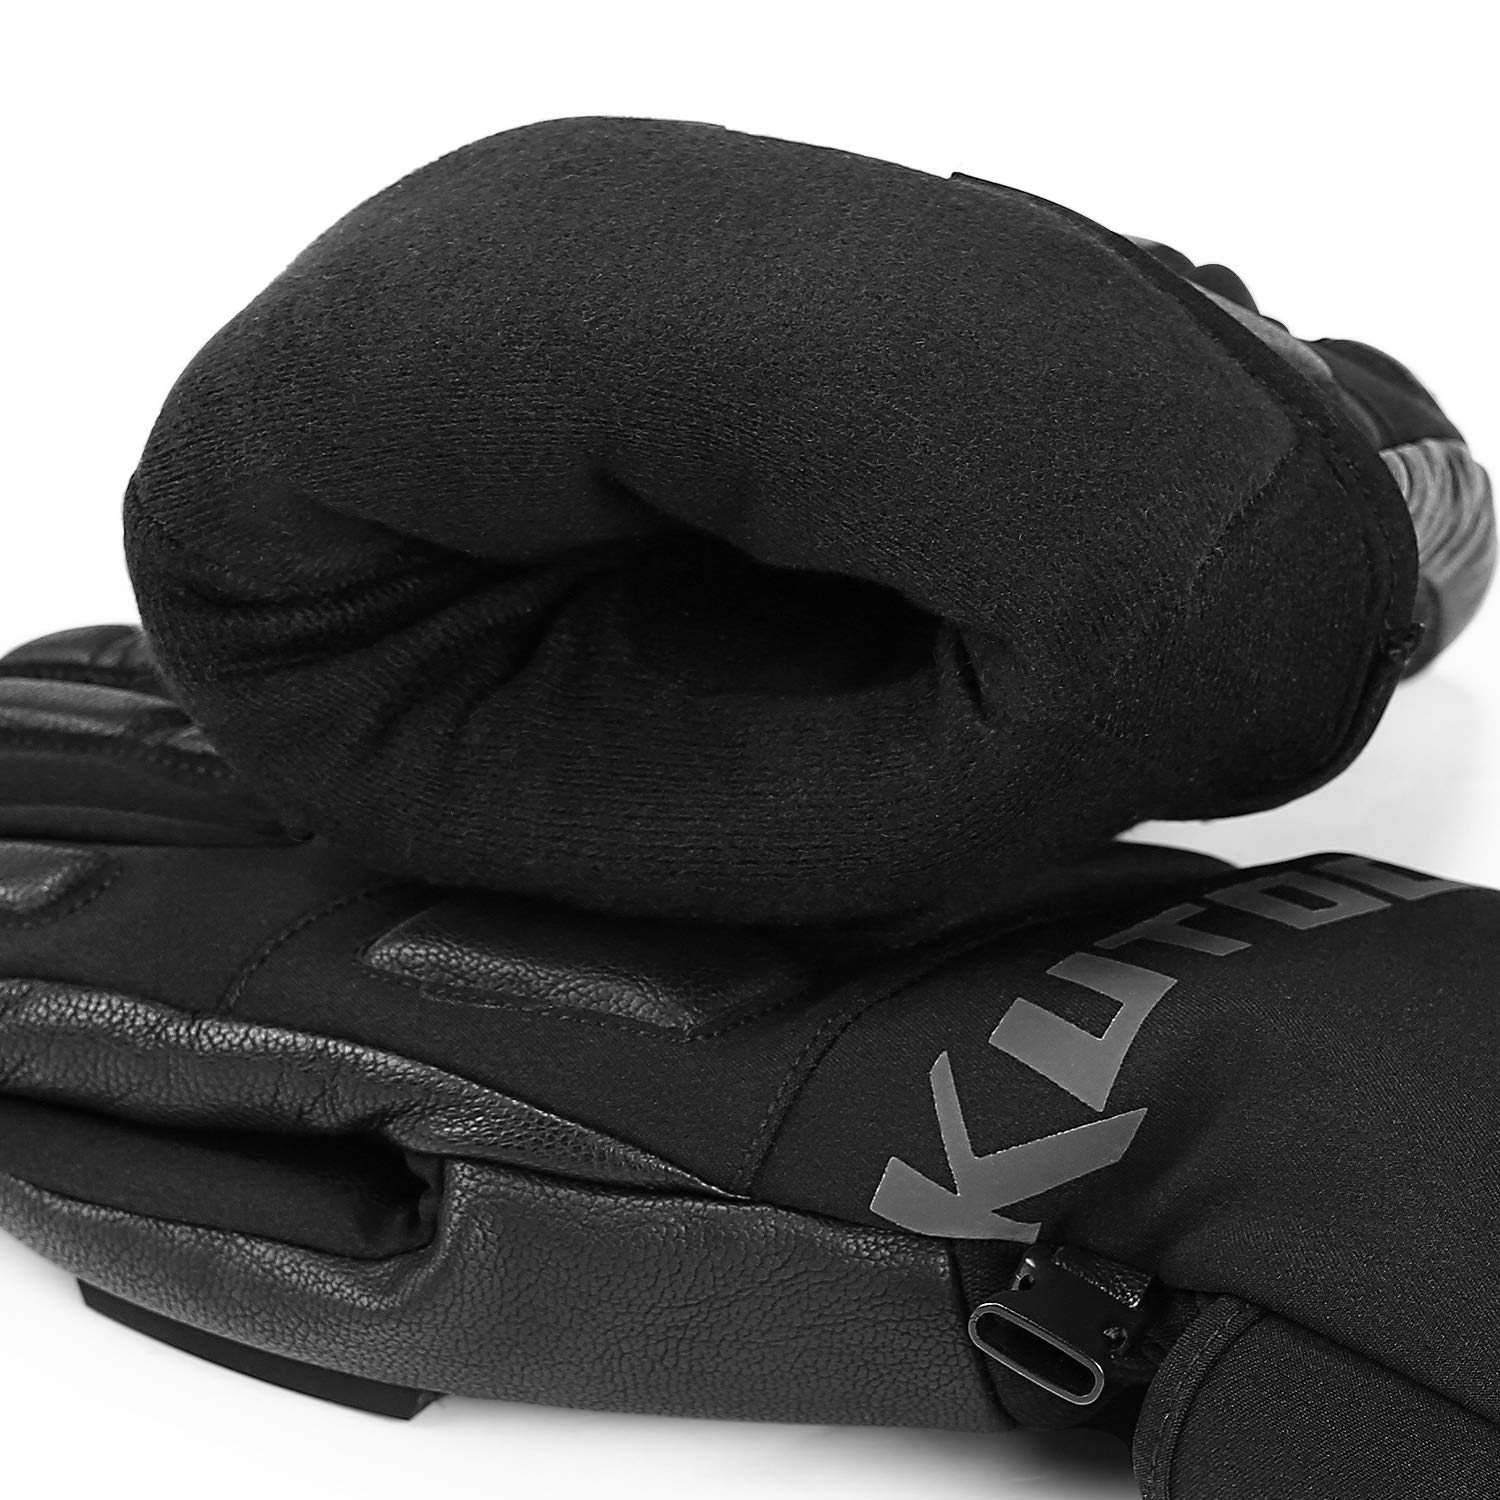 KUTOOK Snow Gloves Men with HIPORA Waterproof Membrane Goat Leaher Palm 3M Thinsulate Insulation for Skiing Snowboarding